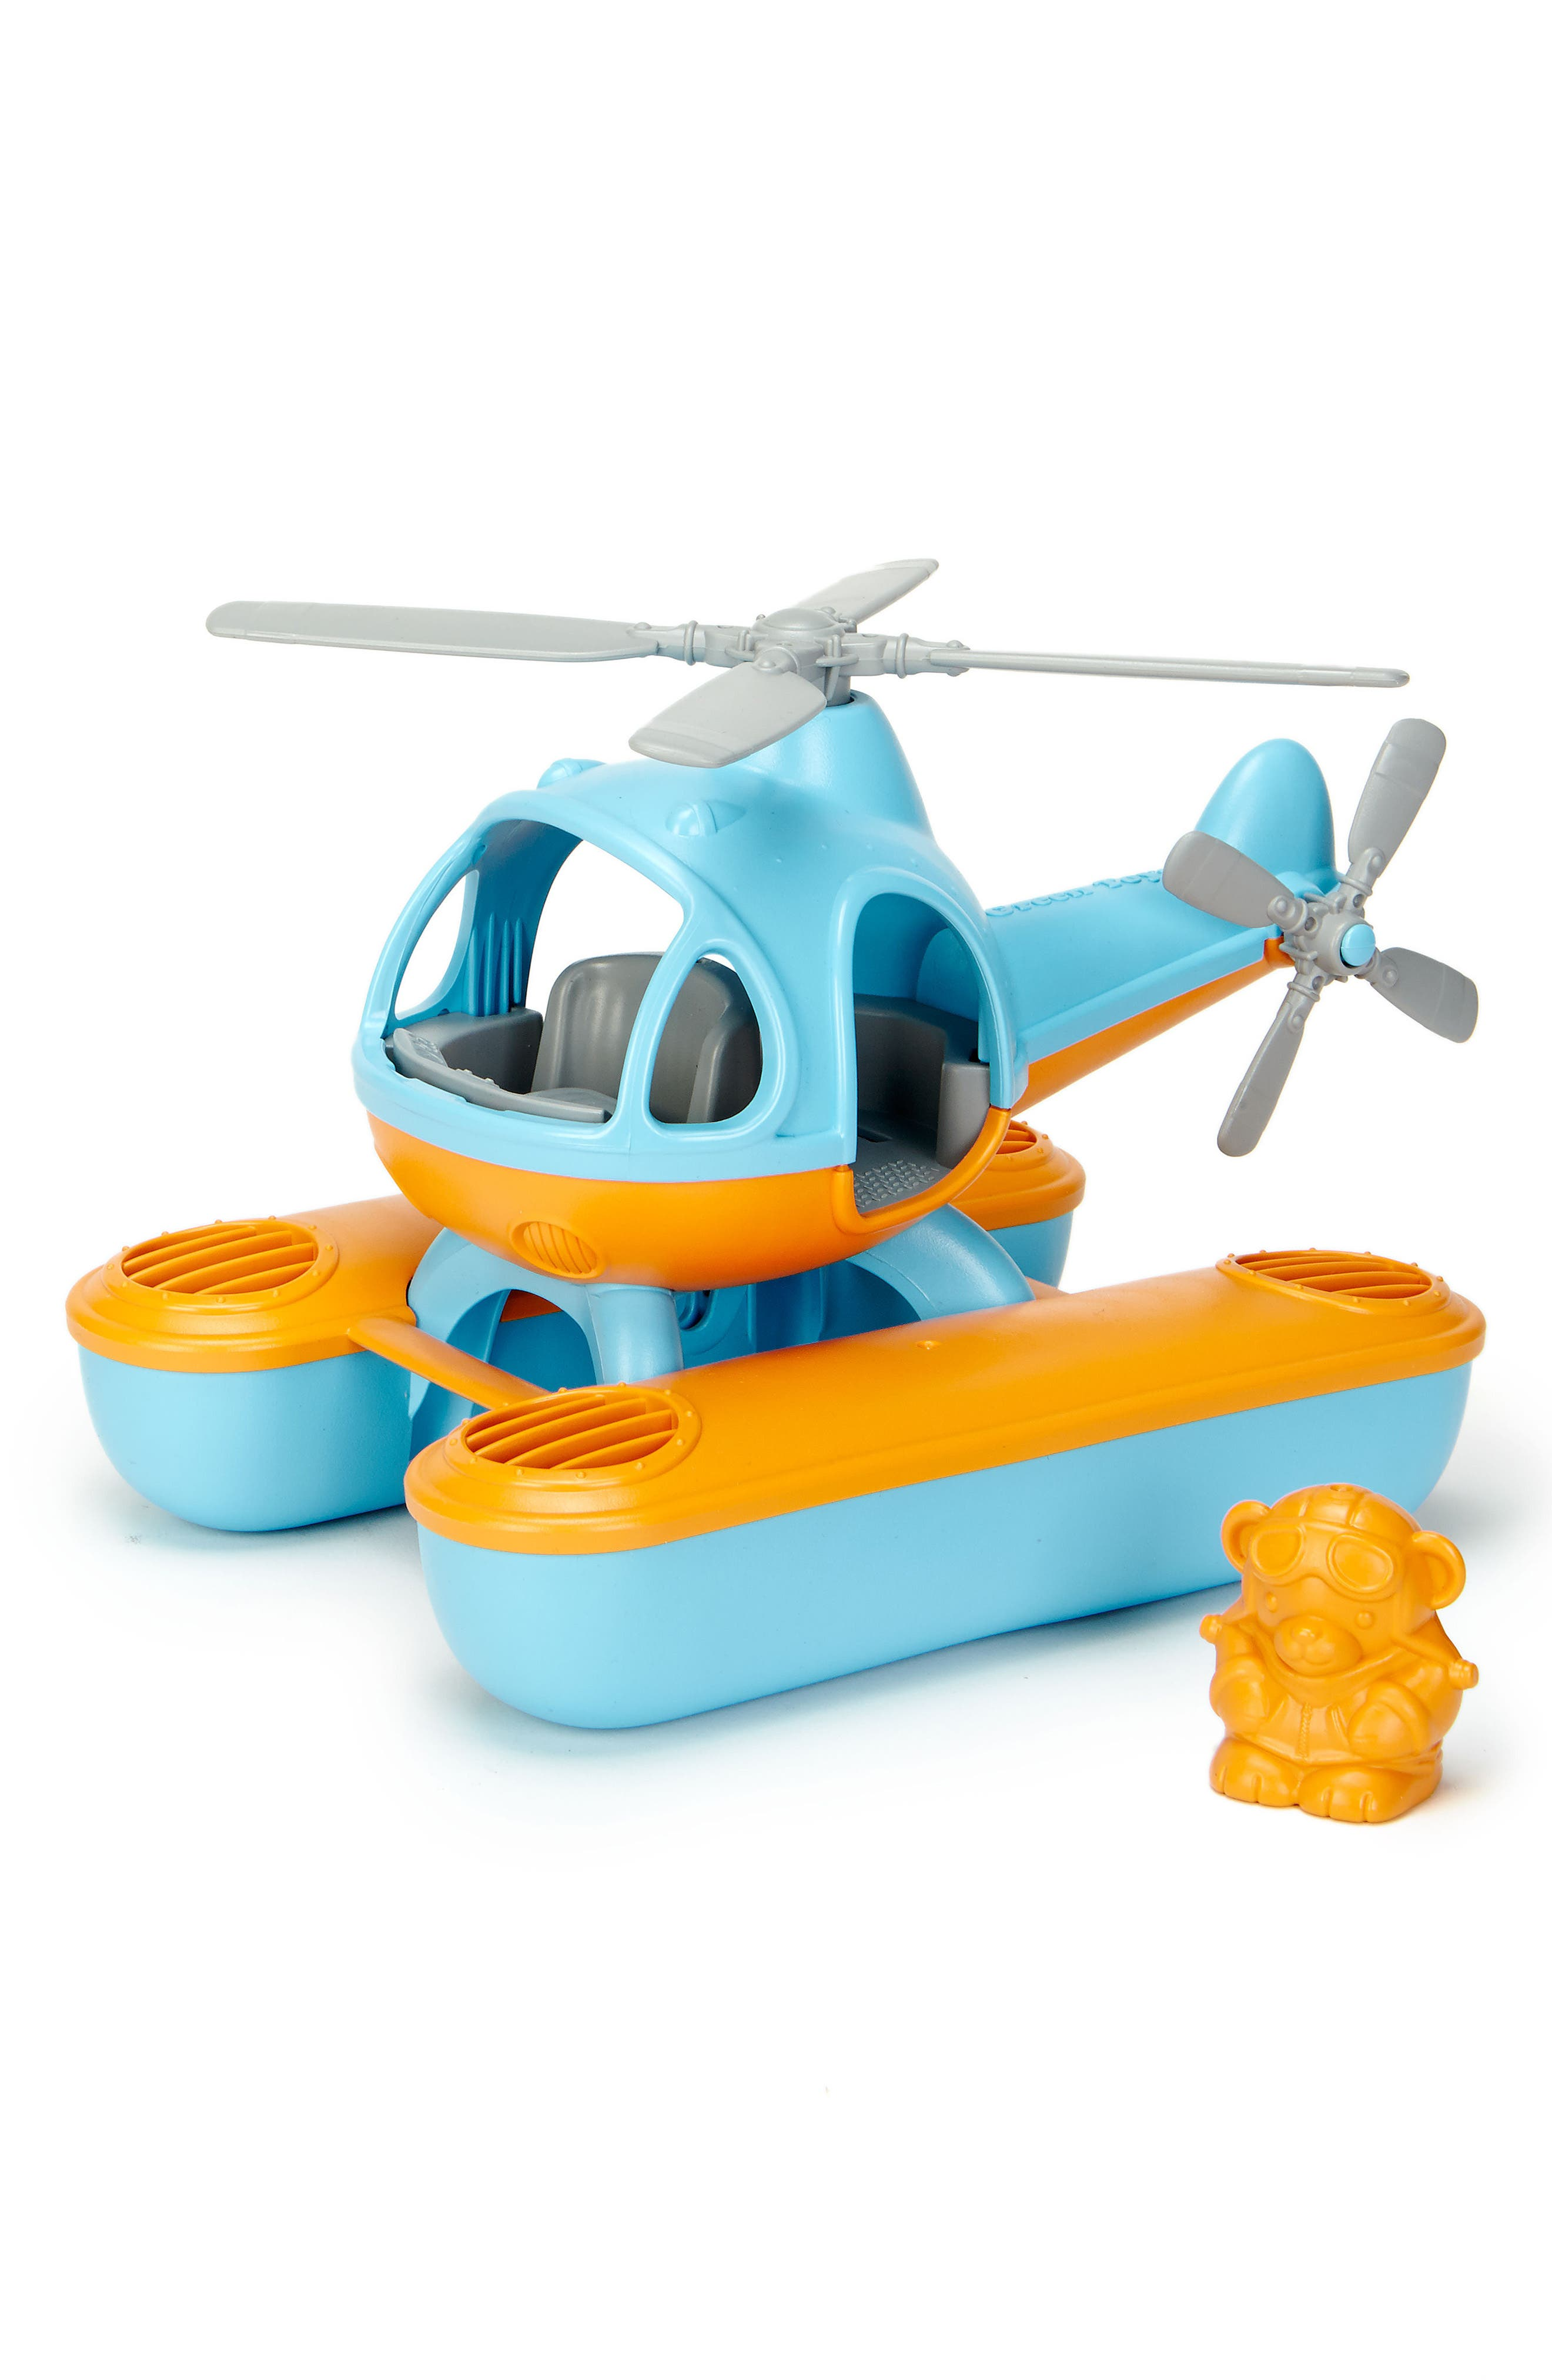 Two-Piece Seacopter Toy,                             Main thumbnail 1, color,                             400